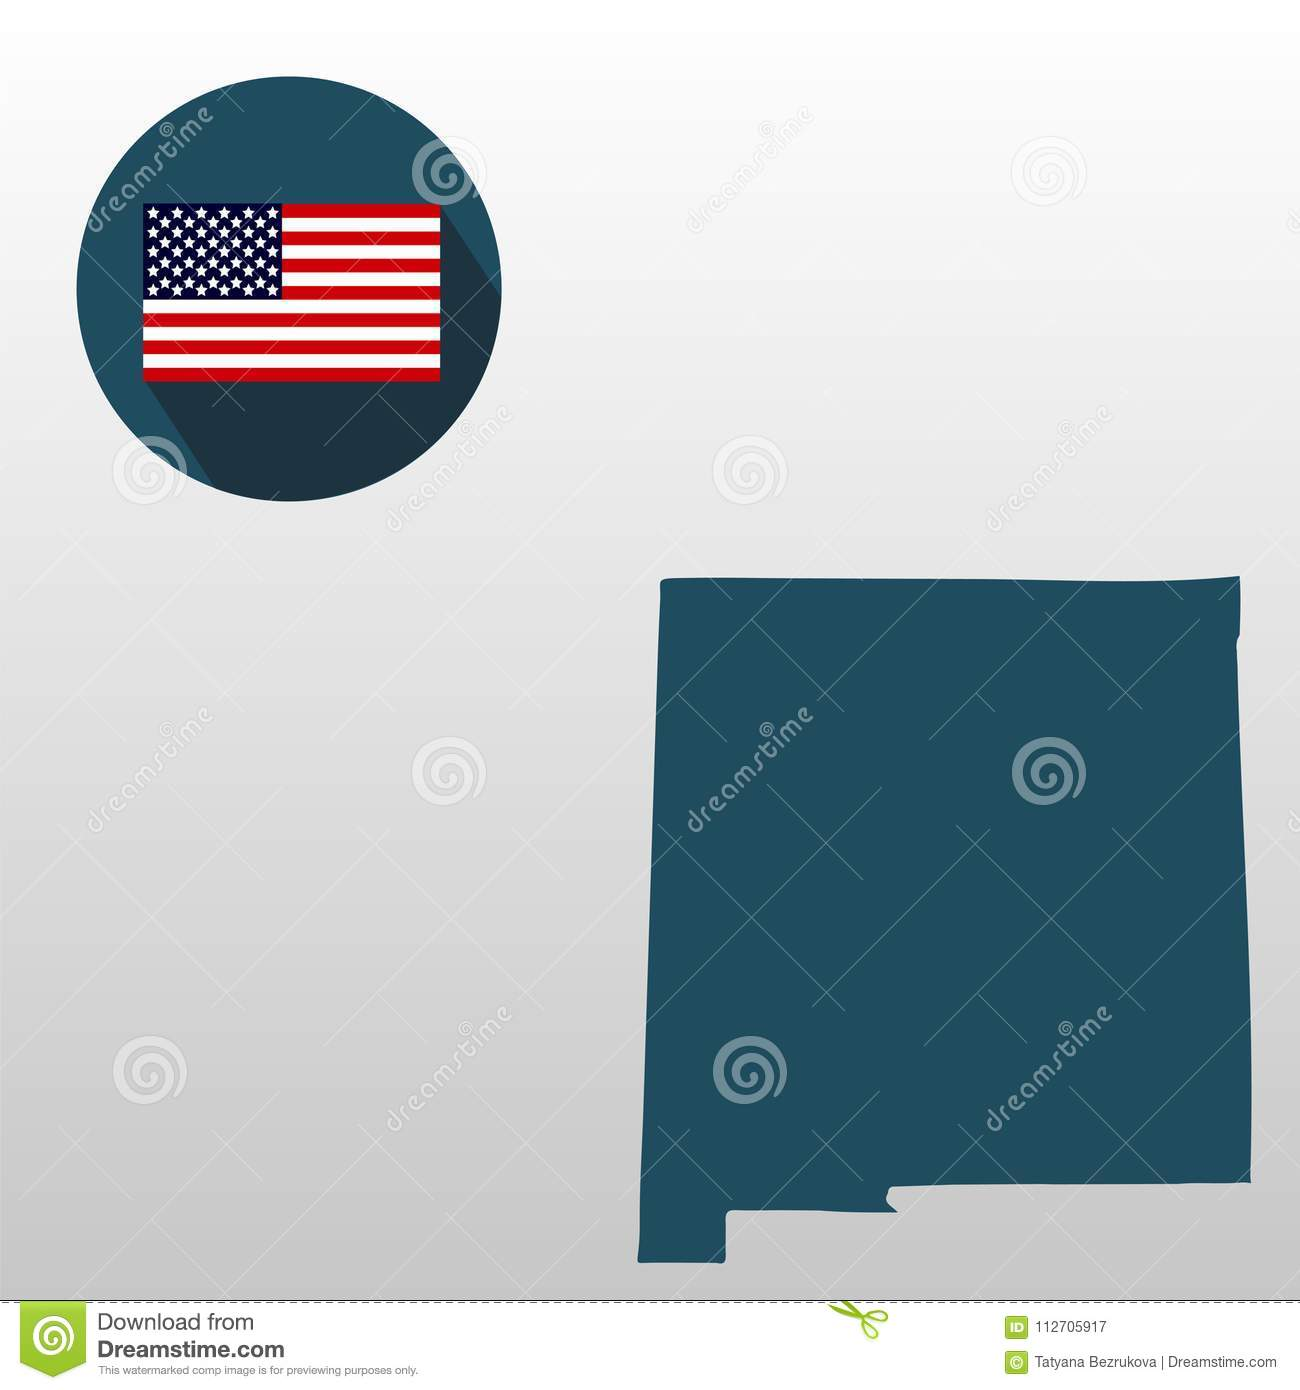 Map Of The U.S. State Of New Mexico On A White Background. American Map Of S In New Mexico on